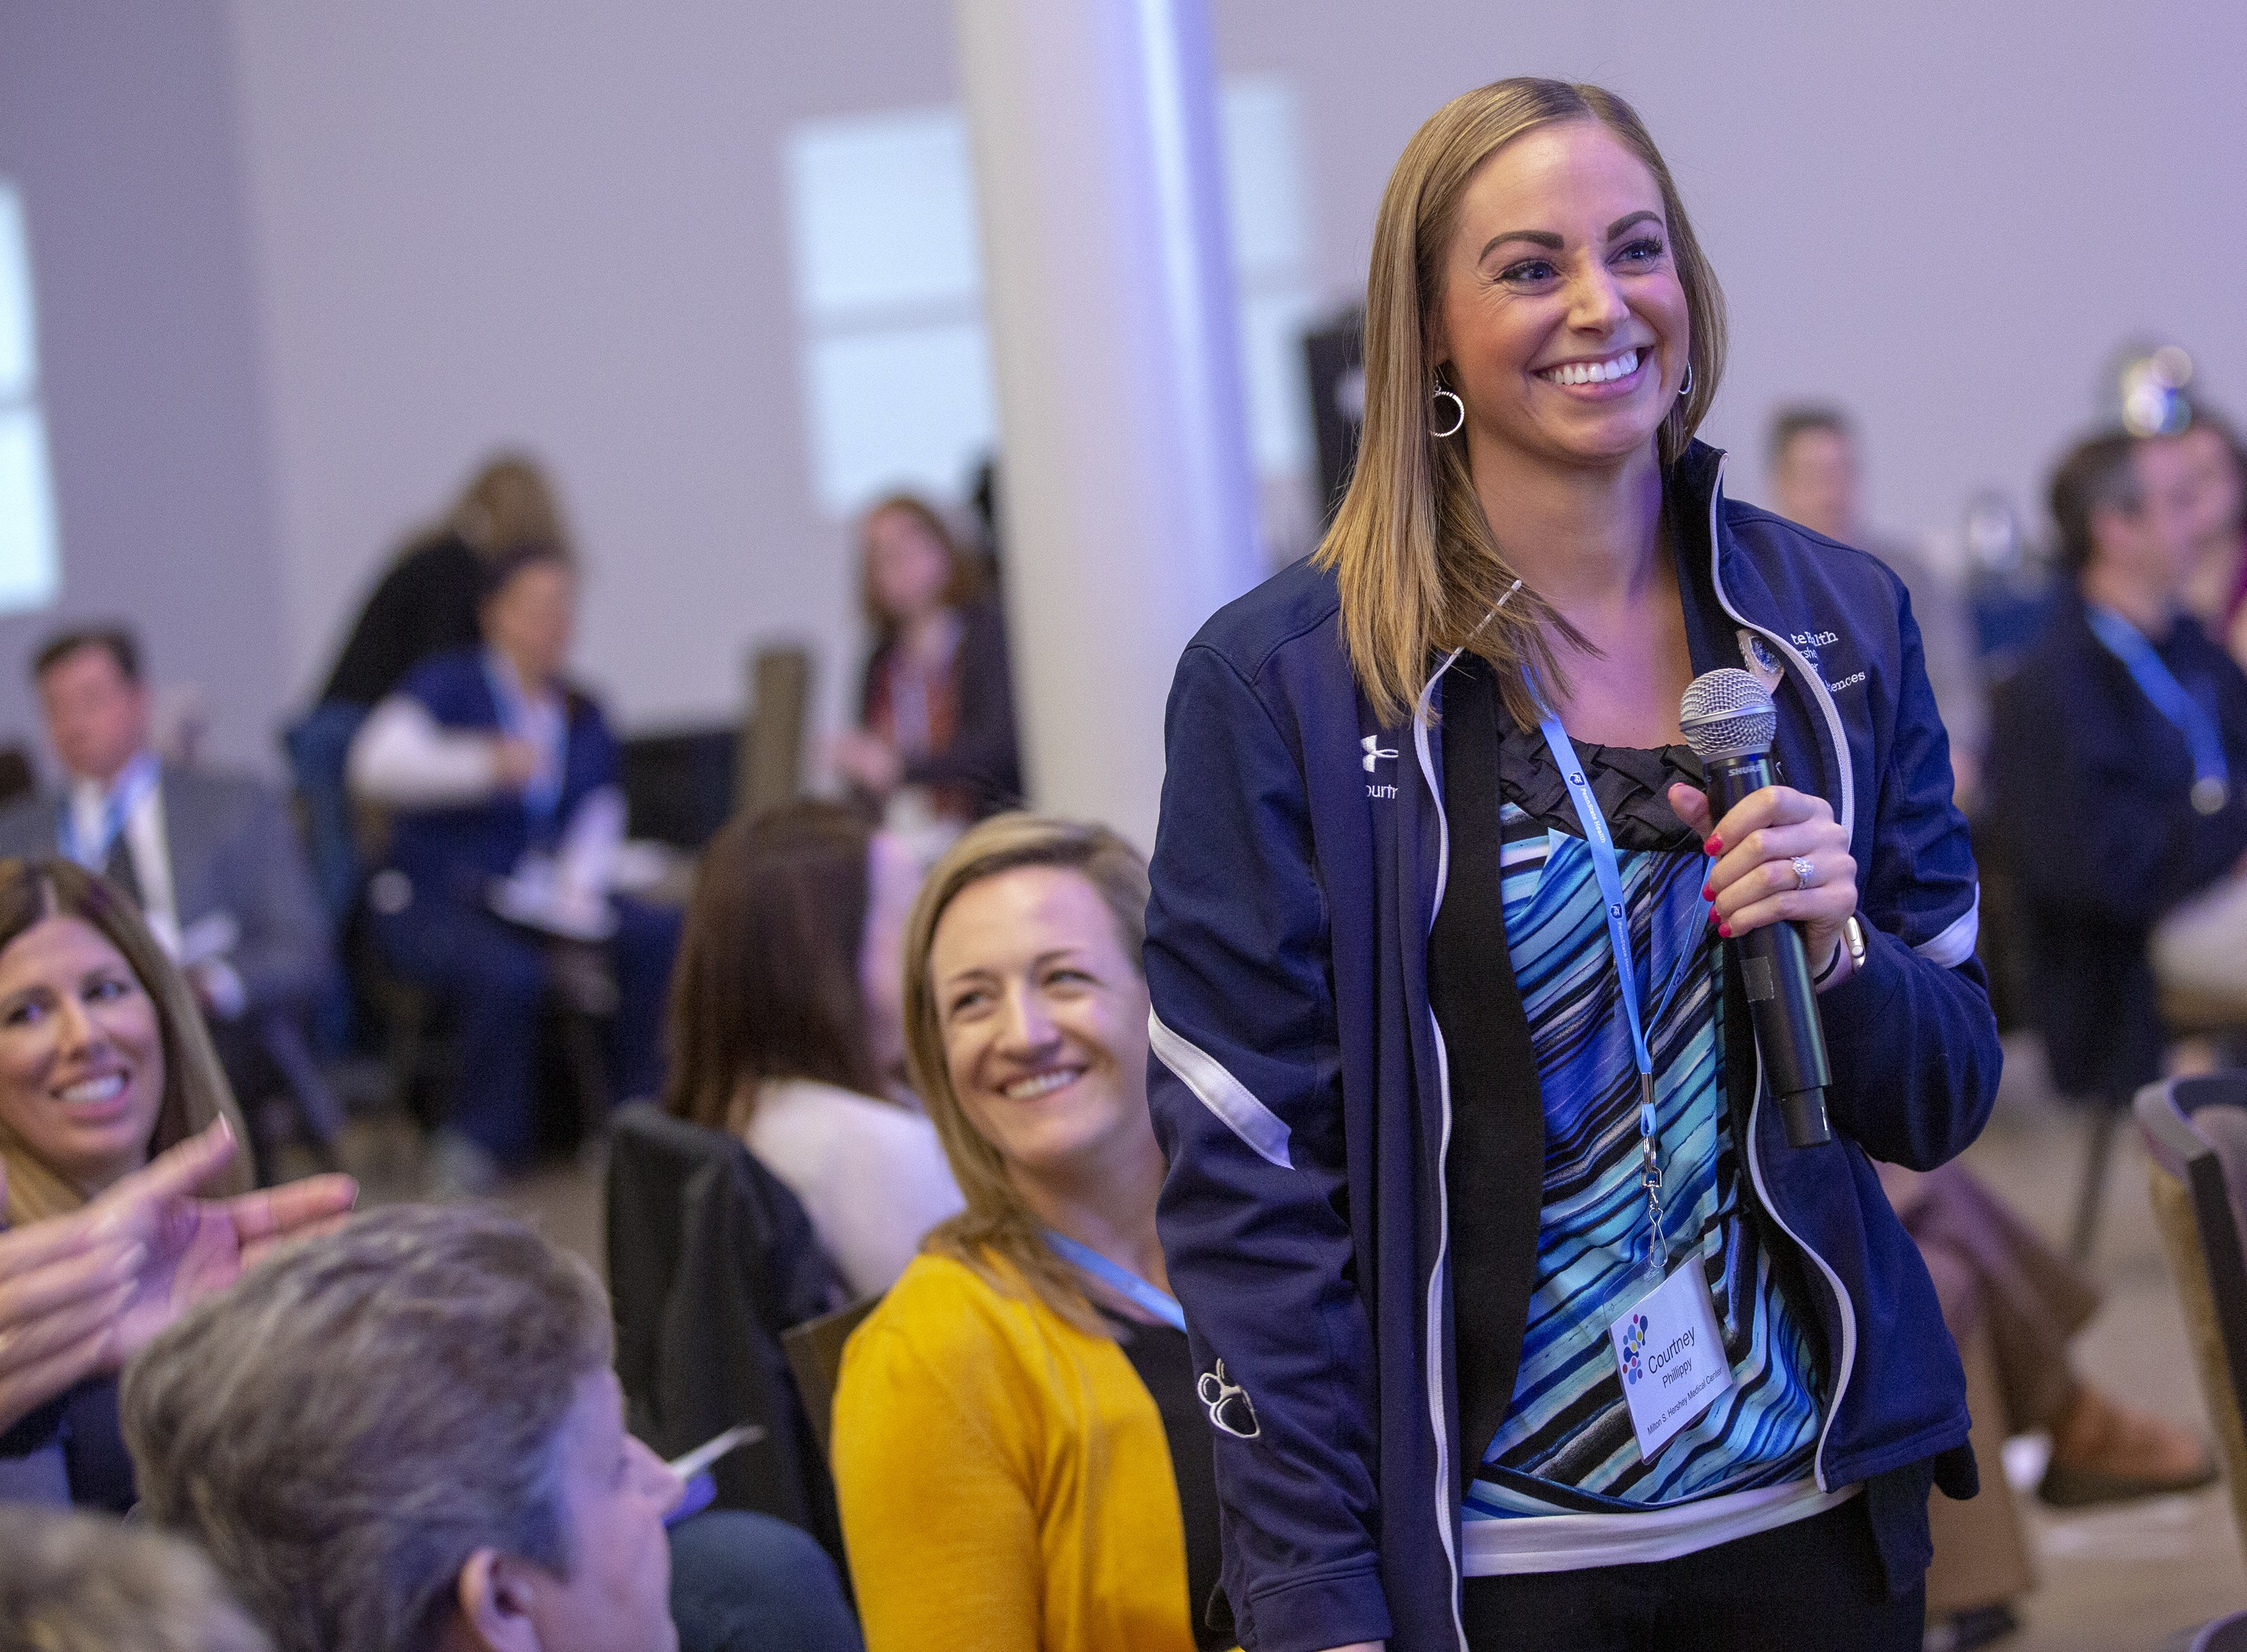 Courtney Phillippy, a woman with long, blonde hair, stands with a microphone in her hand and smiles during a small group session at the 2019 Leadership Conference: This is Penn State Health. She is wearing a Penn State jacket and a striped top. Behind her other employees smile or look to the side. A large steel column is behind her.